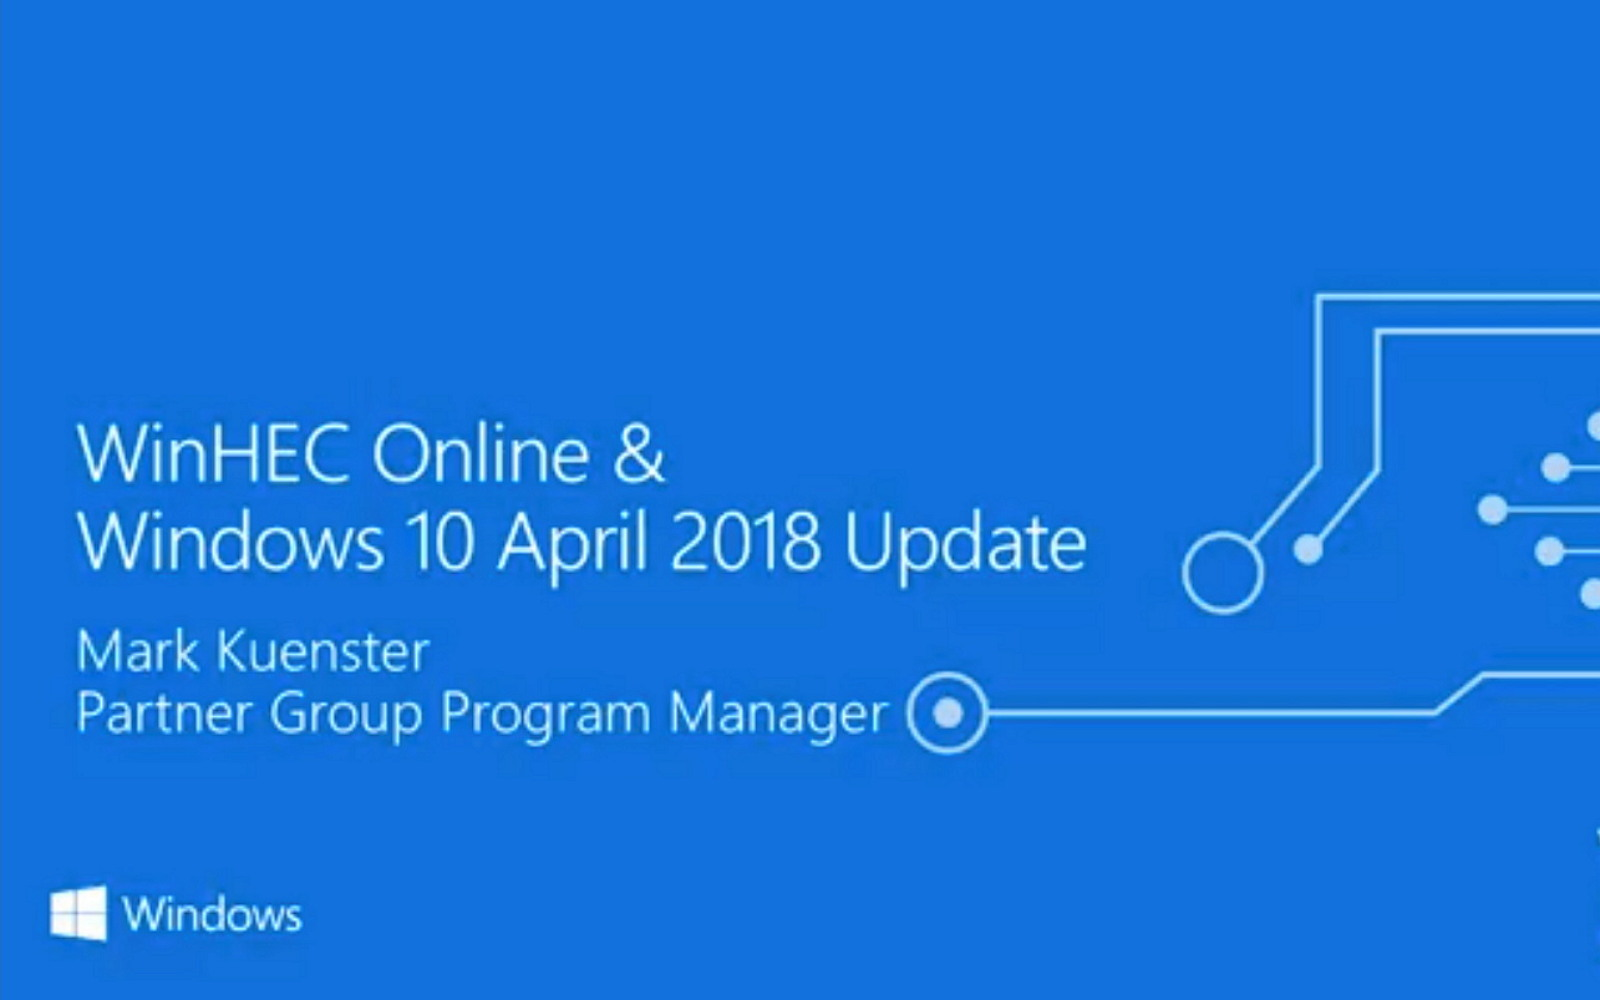 Windows 10 April 2018 Update reference